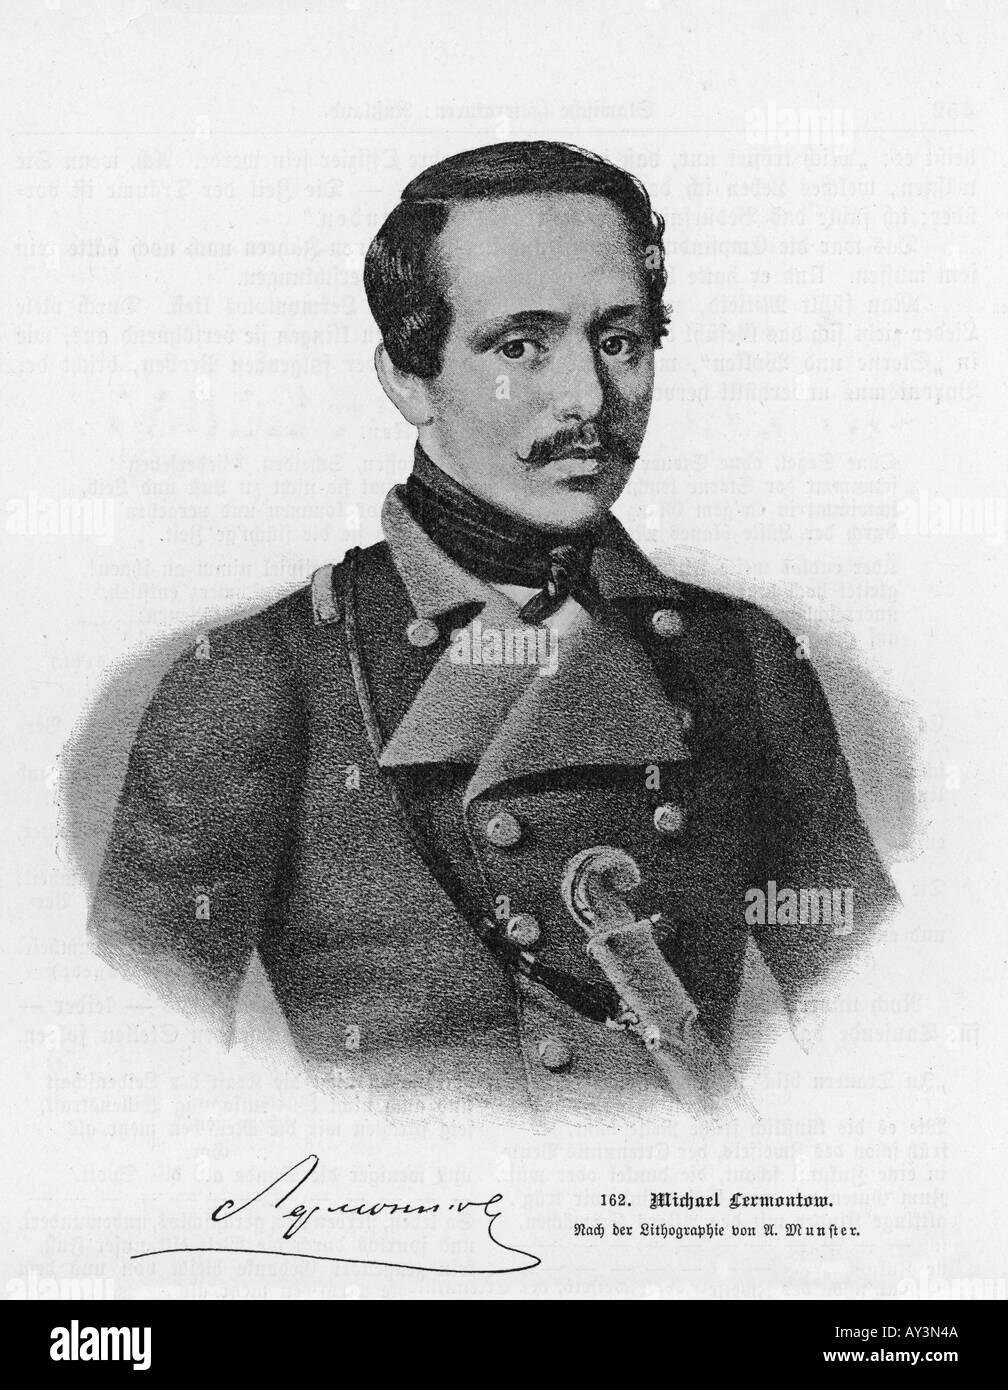 Biography of Mikhail Yuryevich Lermontov. The life and work of Lermontov 88